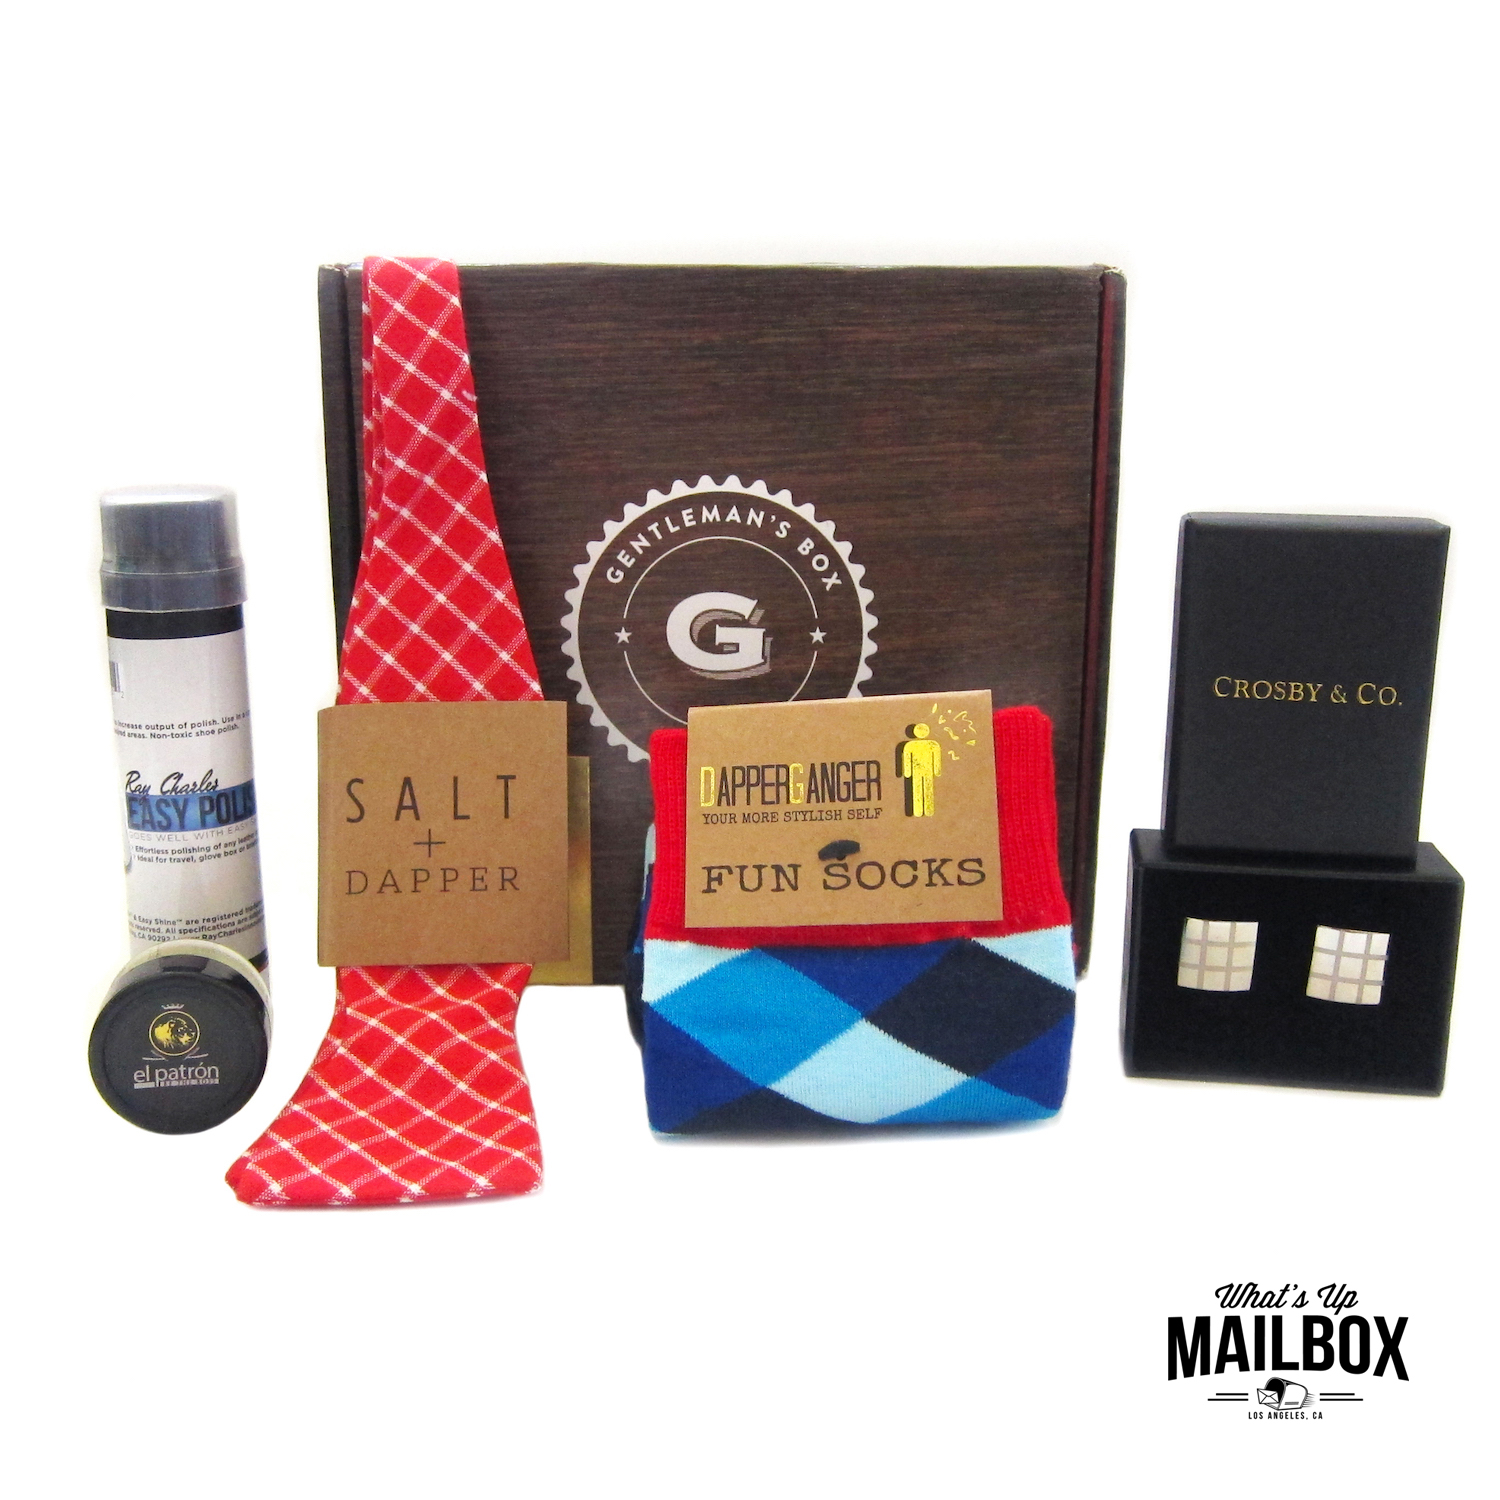 Gentleman's Box May 2016 Review!